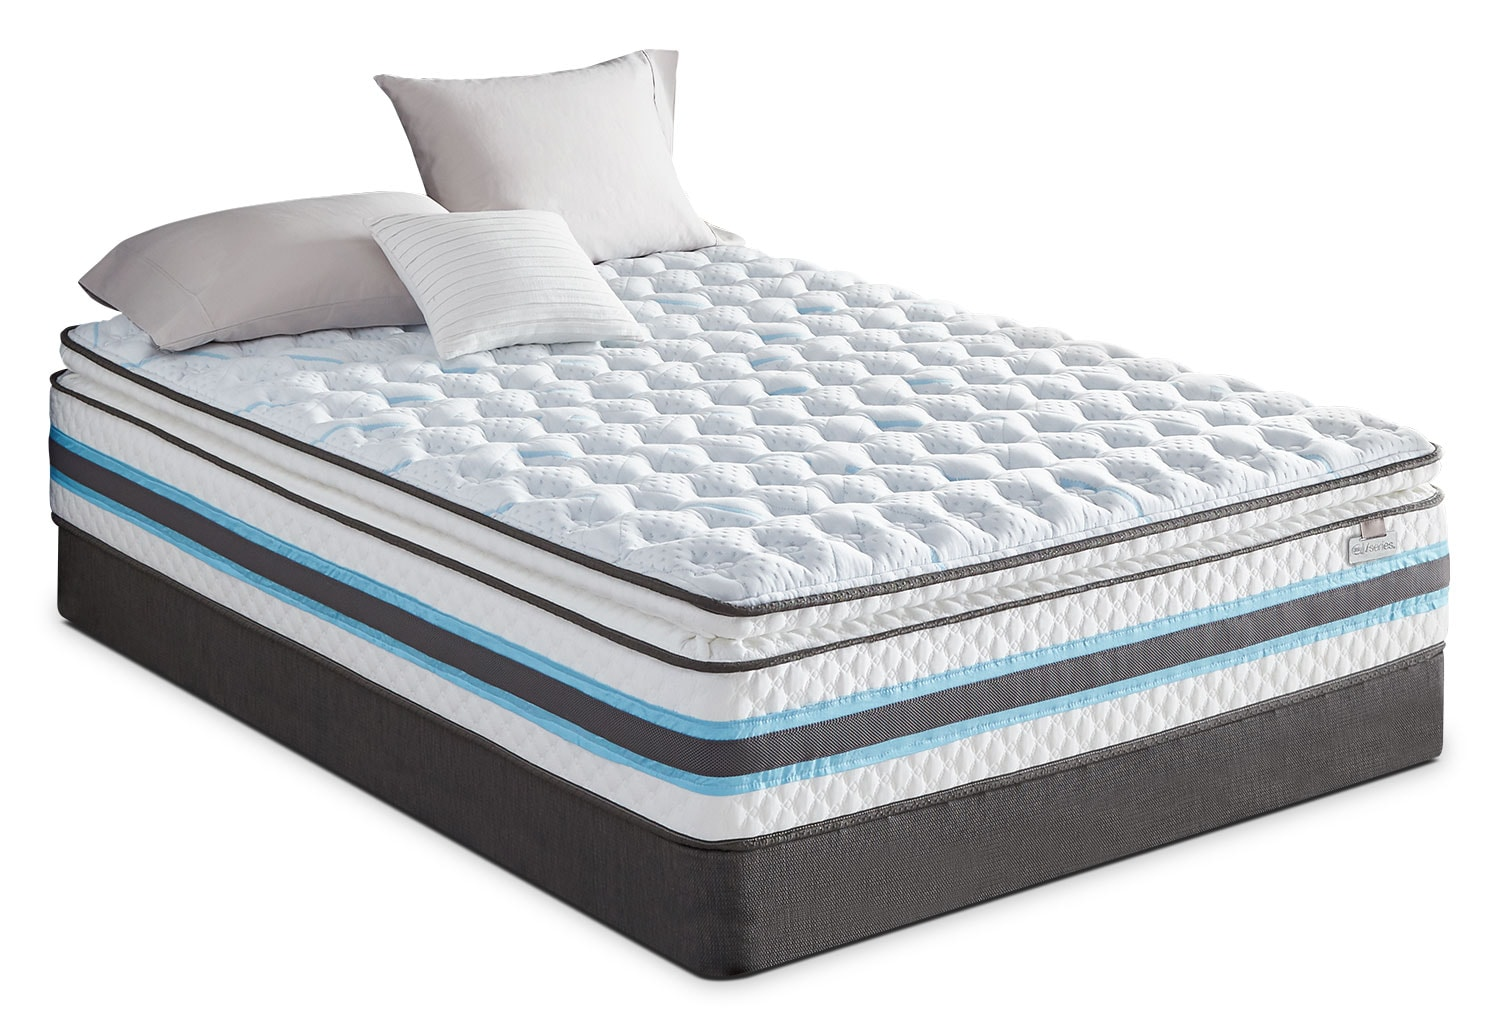 Mattresses and Bedding - Serta iSeries® Breathtaking Pillow-Top Firm Full Mattress Set